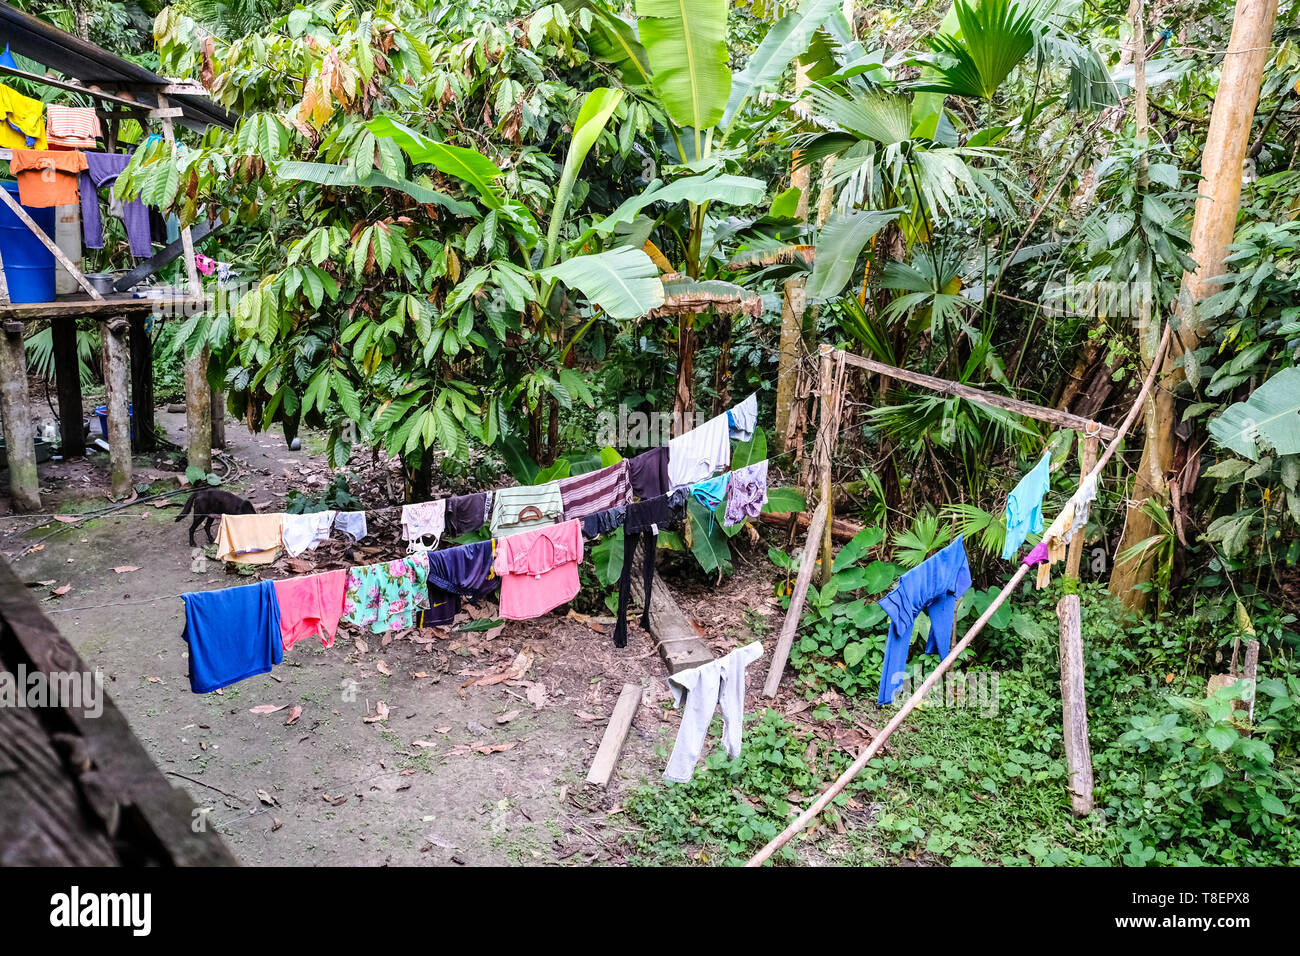 Clothes hanging outside an indigenous residence in Ecuador - Stock Image